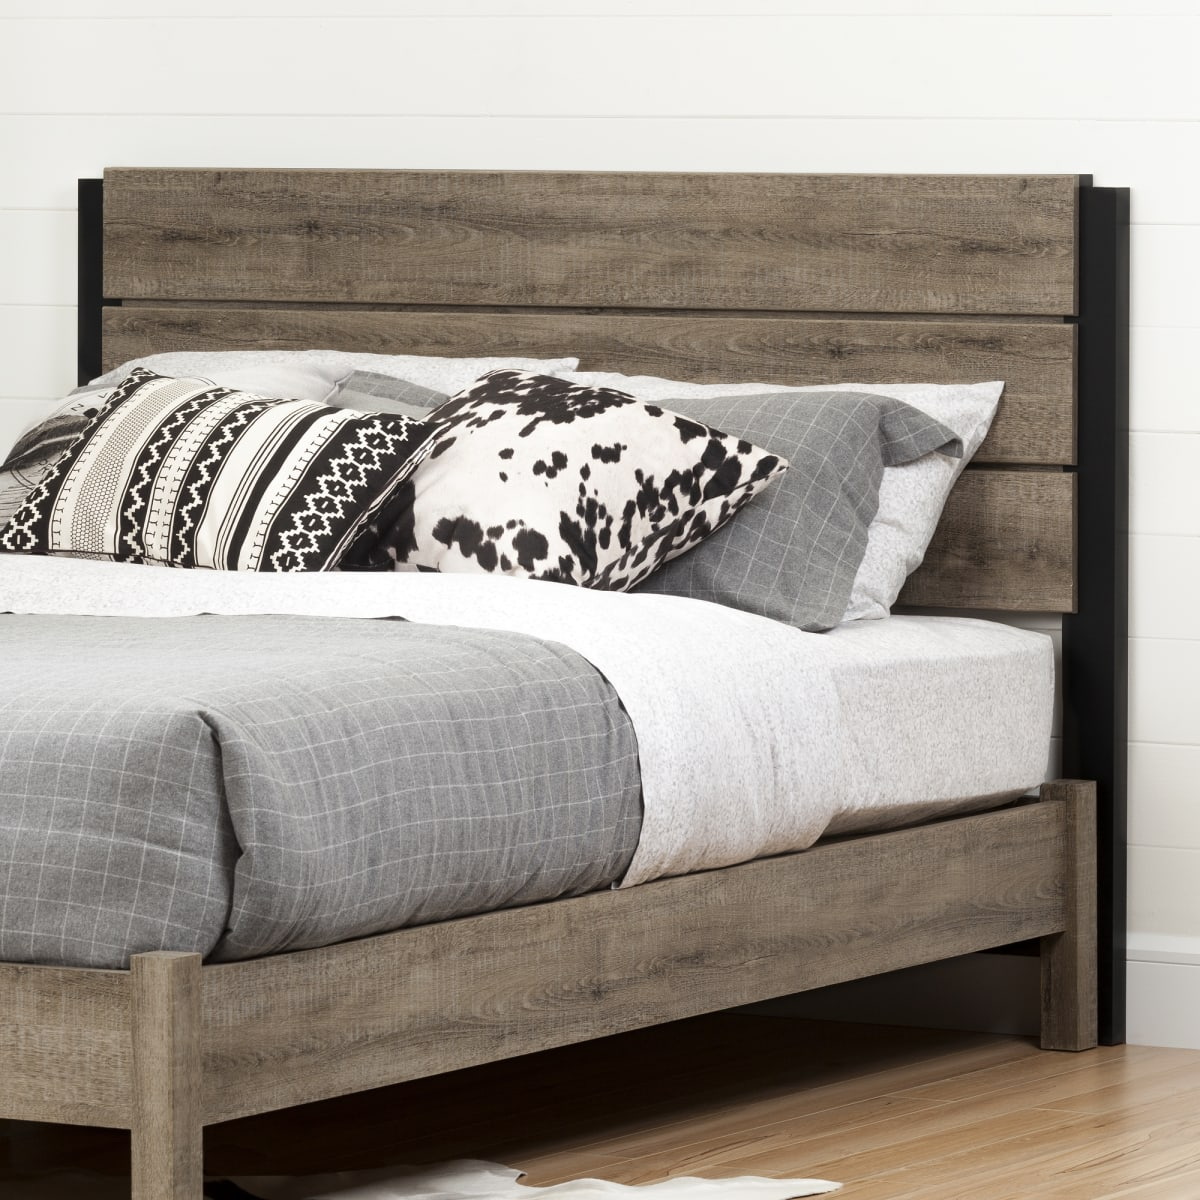 Munich Industrial Headboard Munich Collections Products South Shore Furniture Us Furniture For Sale Designed And Manufactured In North America